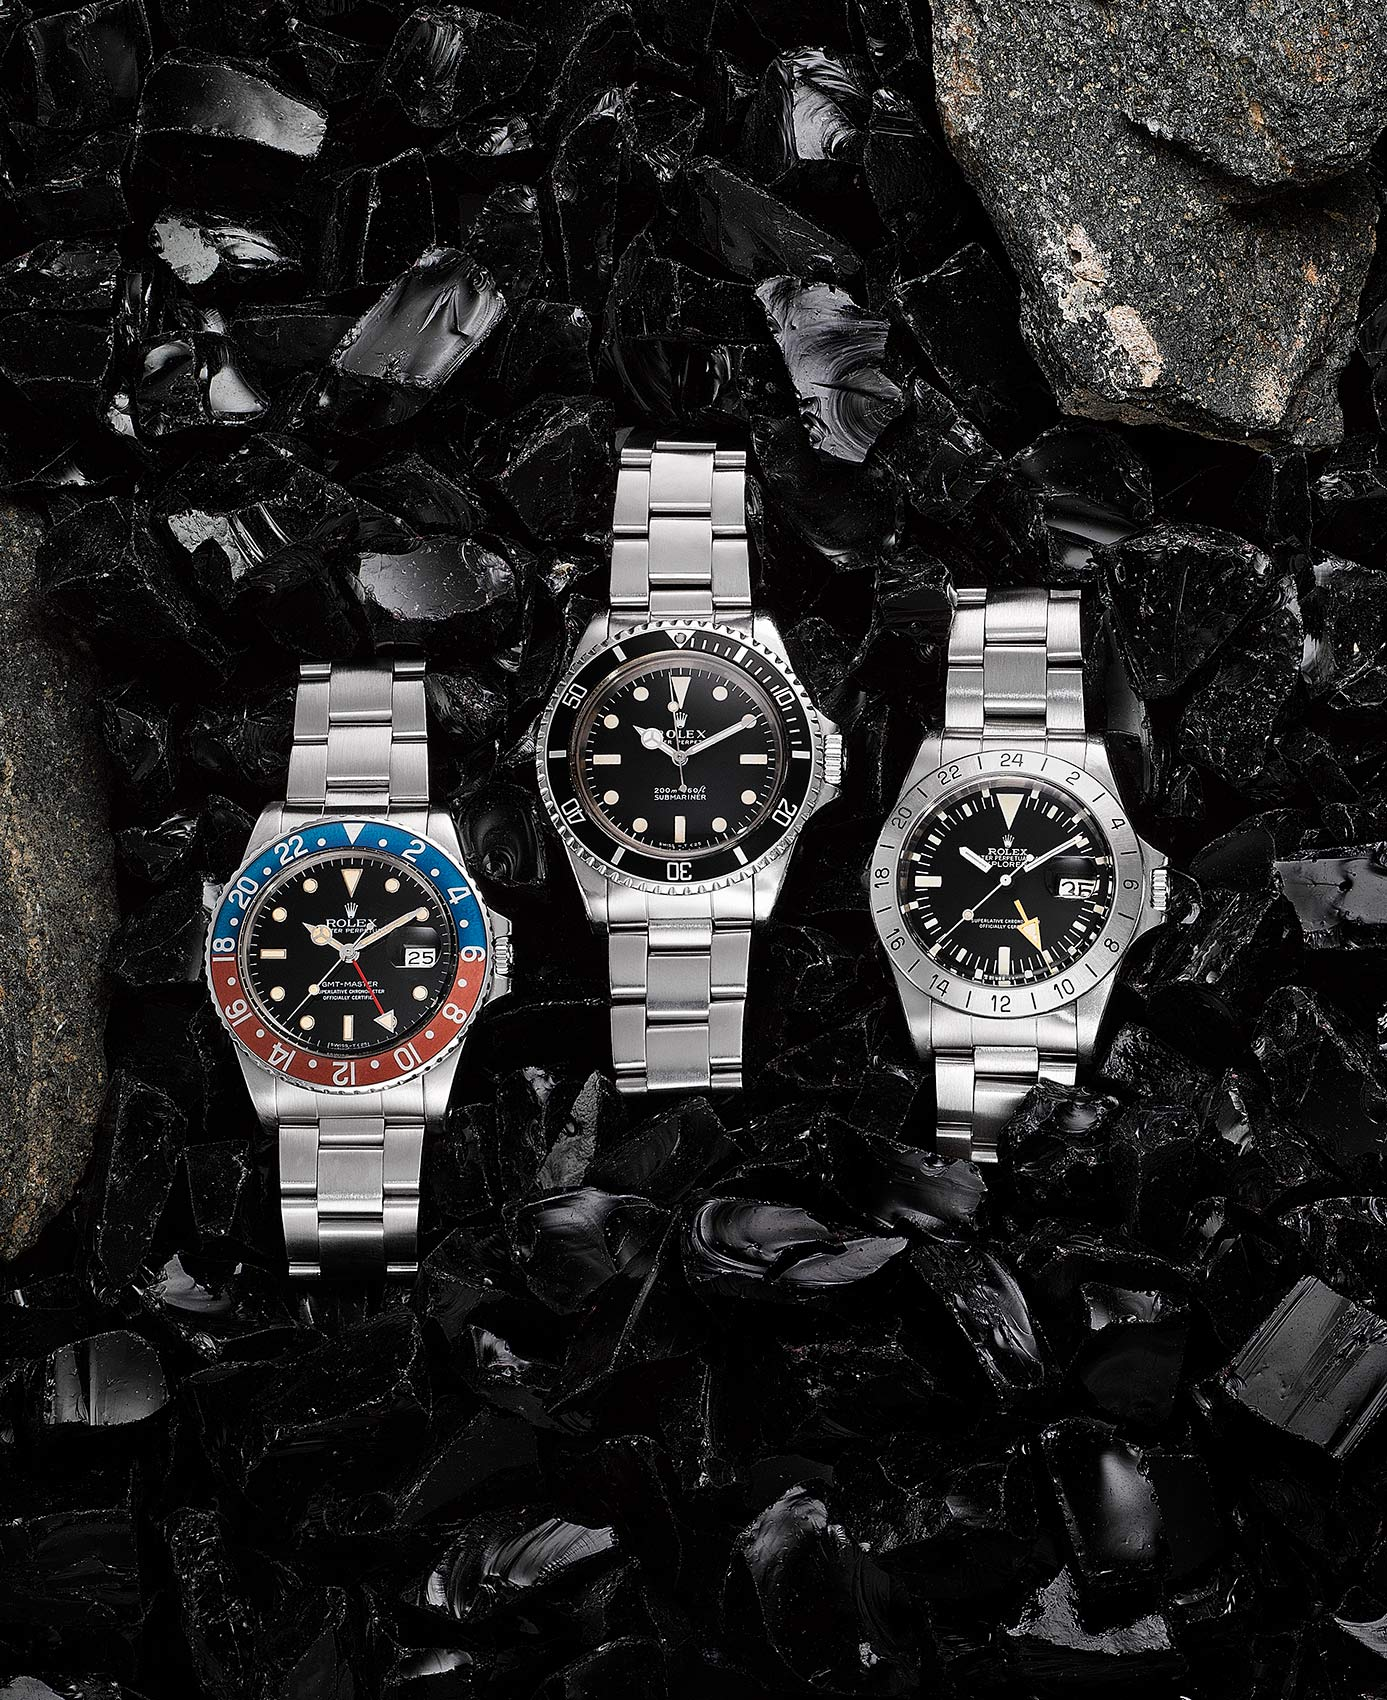 Rolex-Watches-on-Black-Carbon